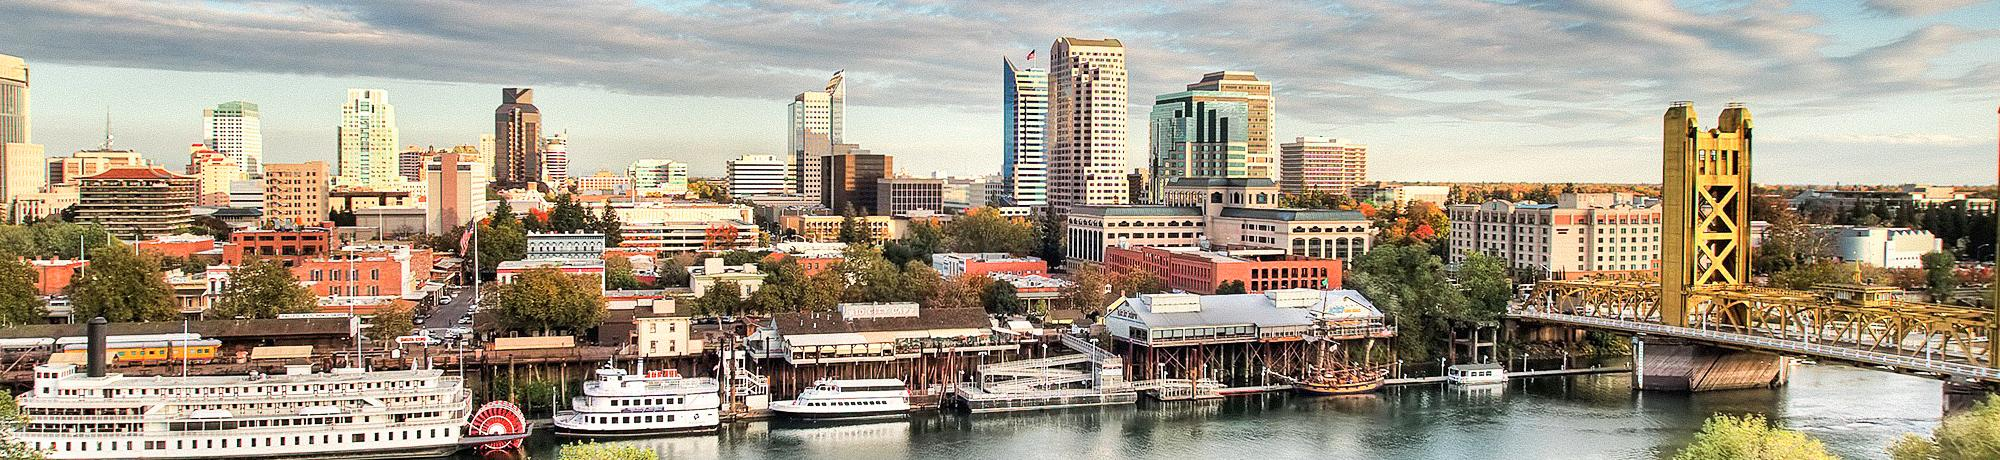 view across the river to downtown sacramento